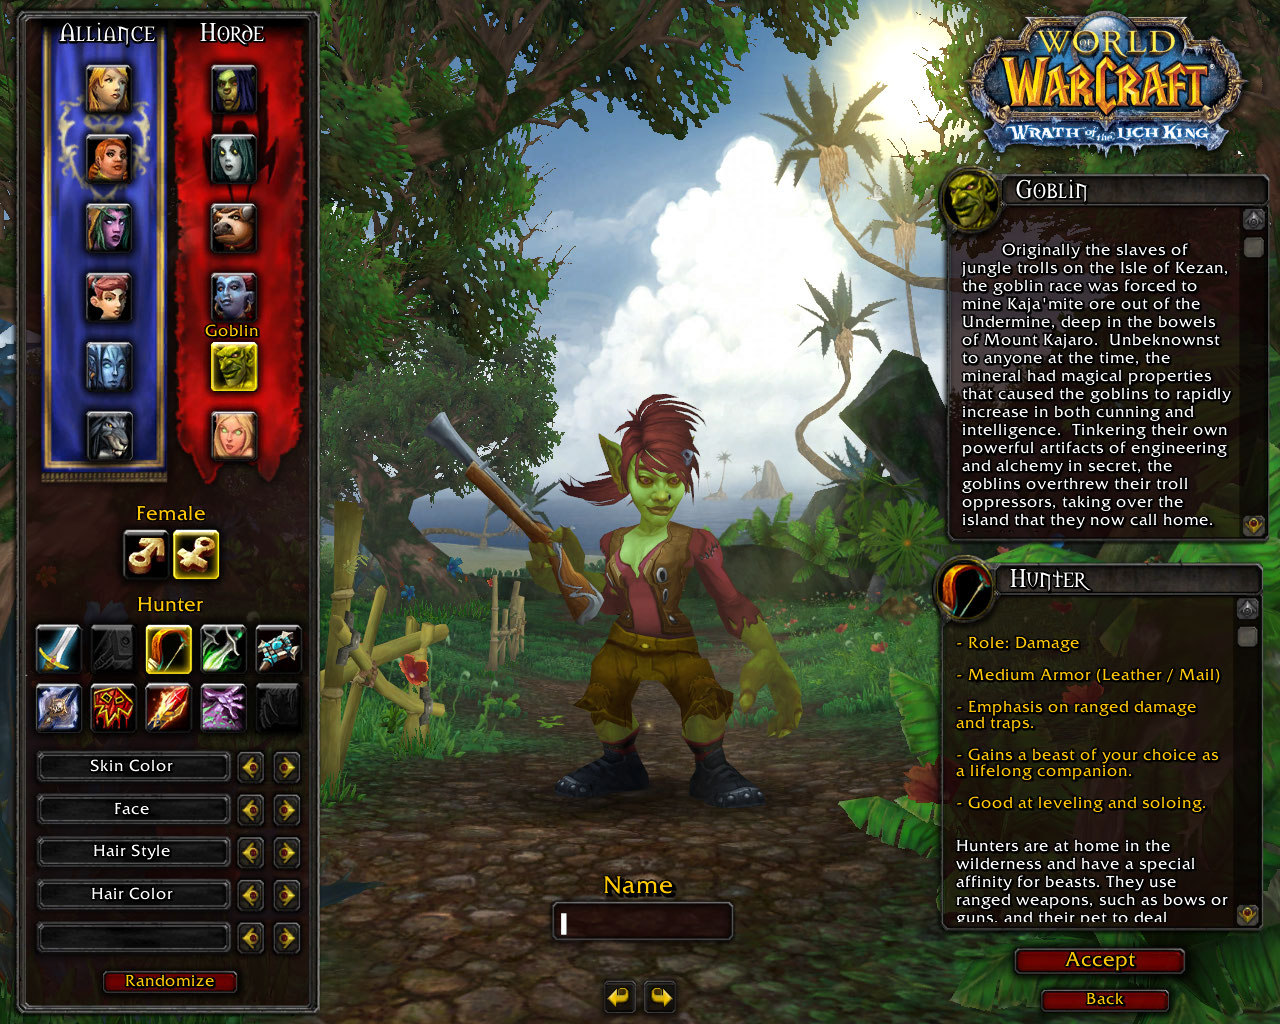 World of warcraft goblin nude mod naked tube